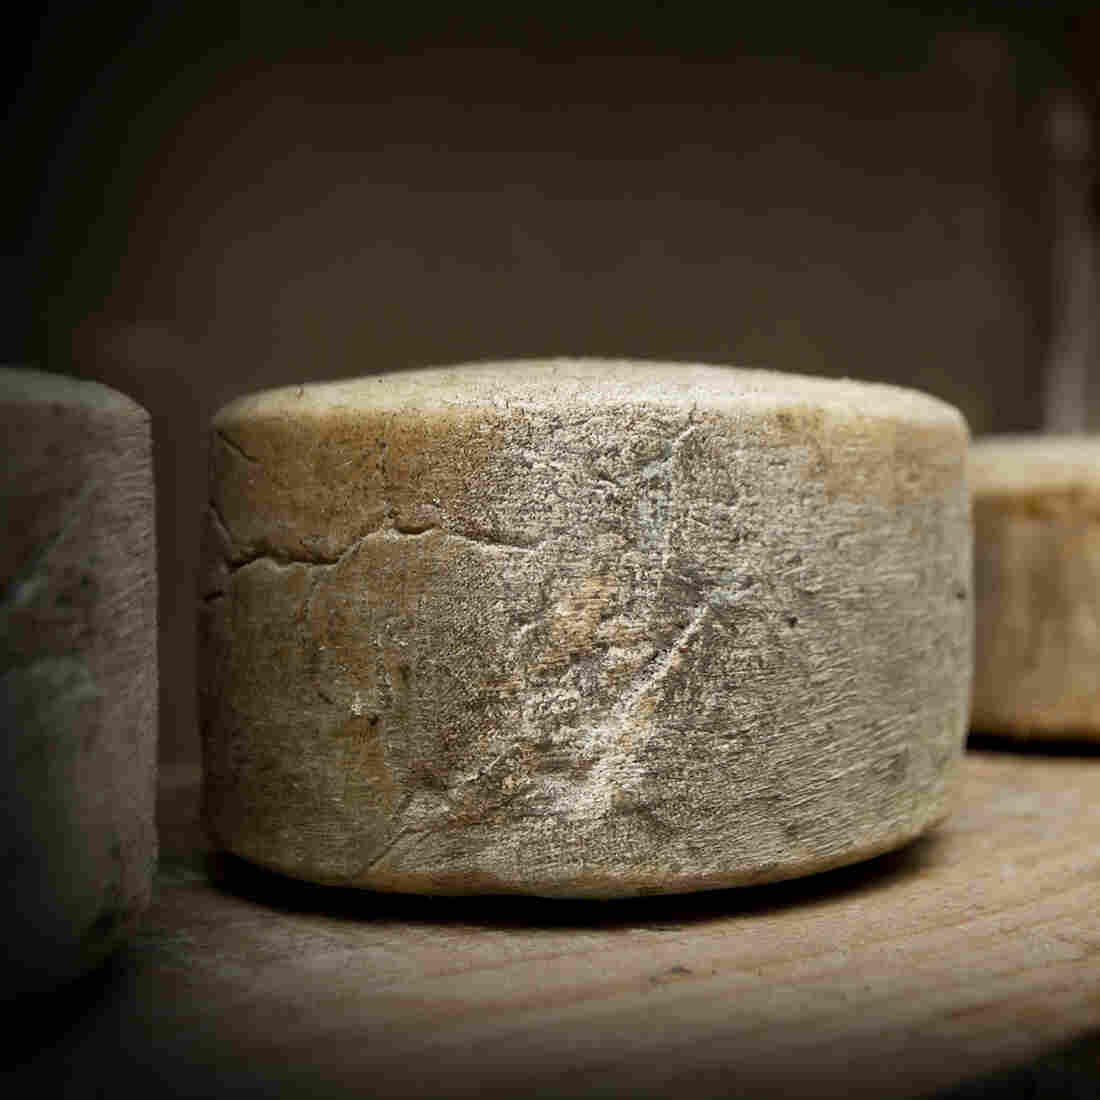 Many artisan cheese producers never pasteurize their milk – it's raw. The milk's natural microbial community is still in there. This microbial festival gives cheese variety and intrigues scientists.